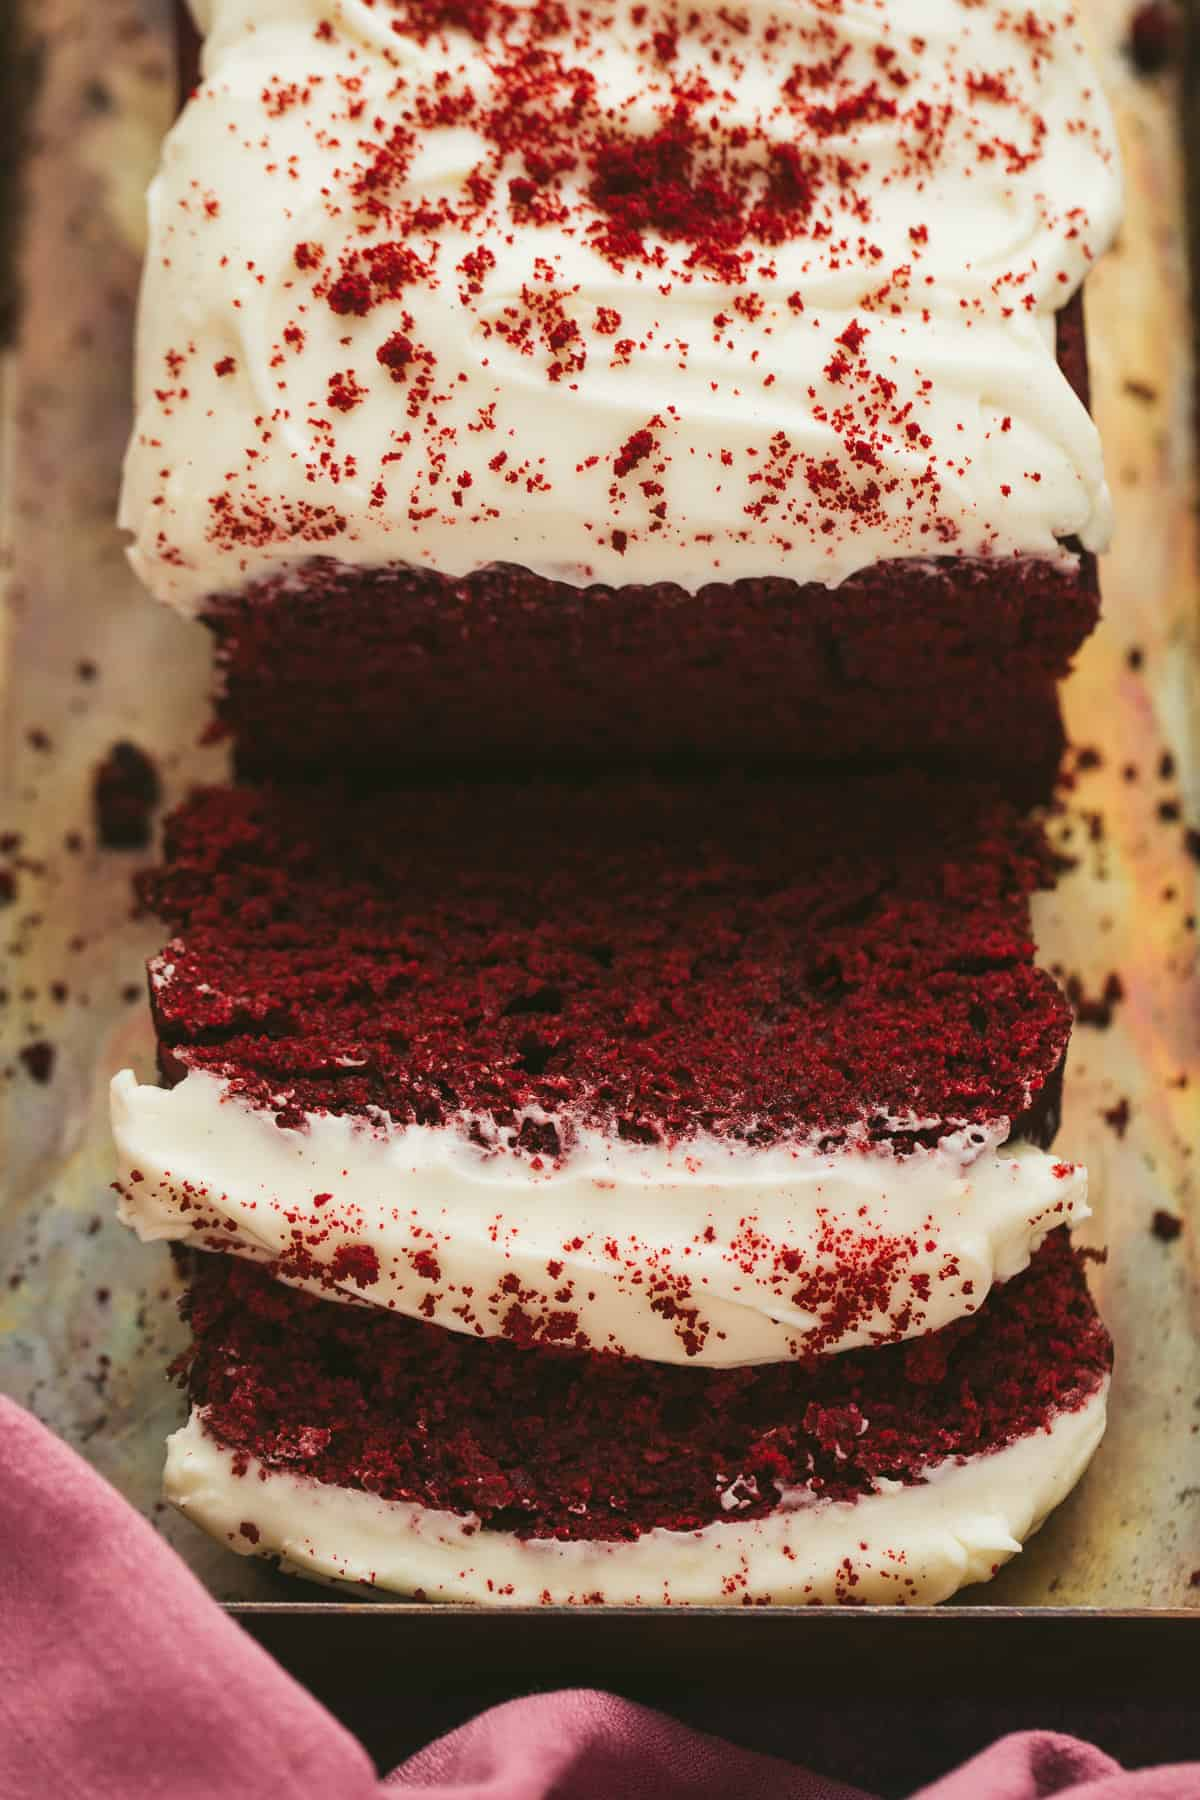 A red velvet loaf cake that has had two slices cut away.